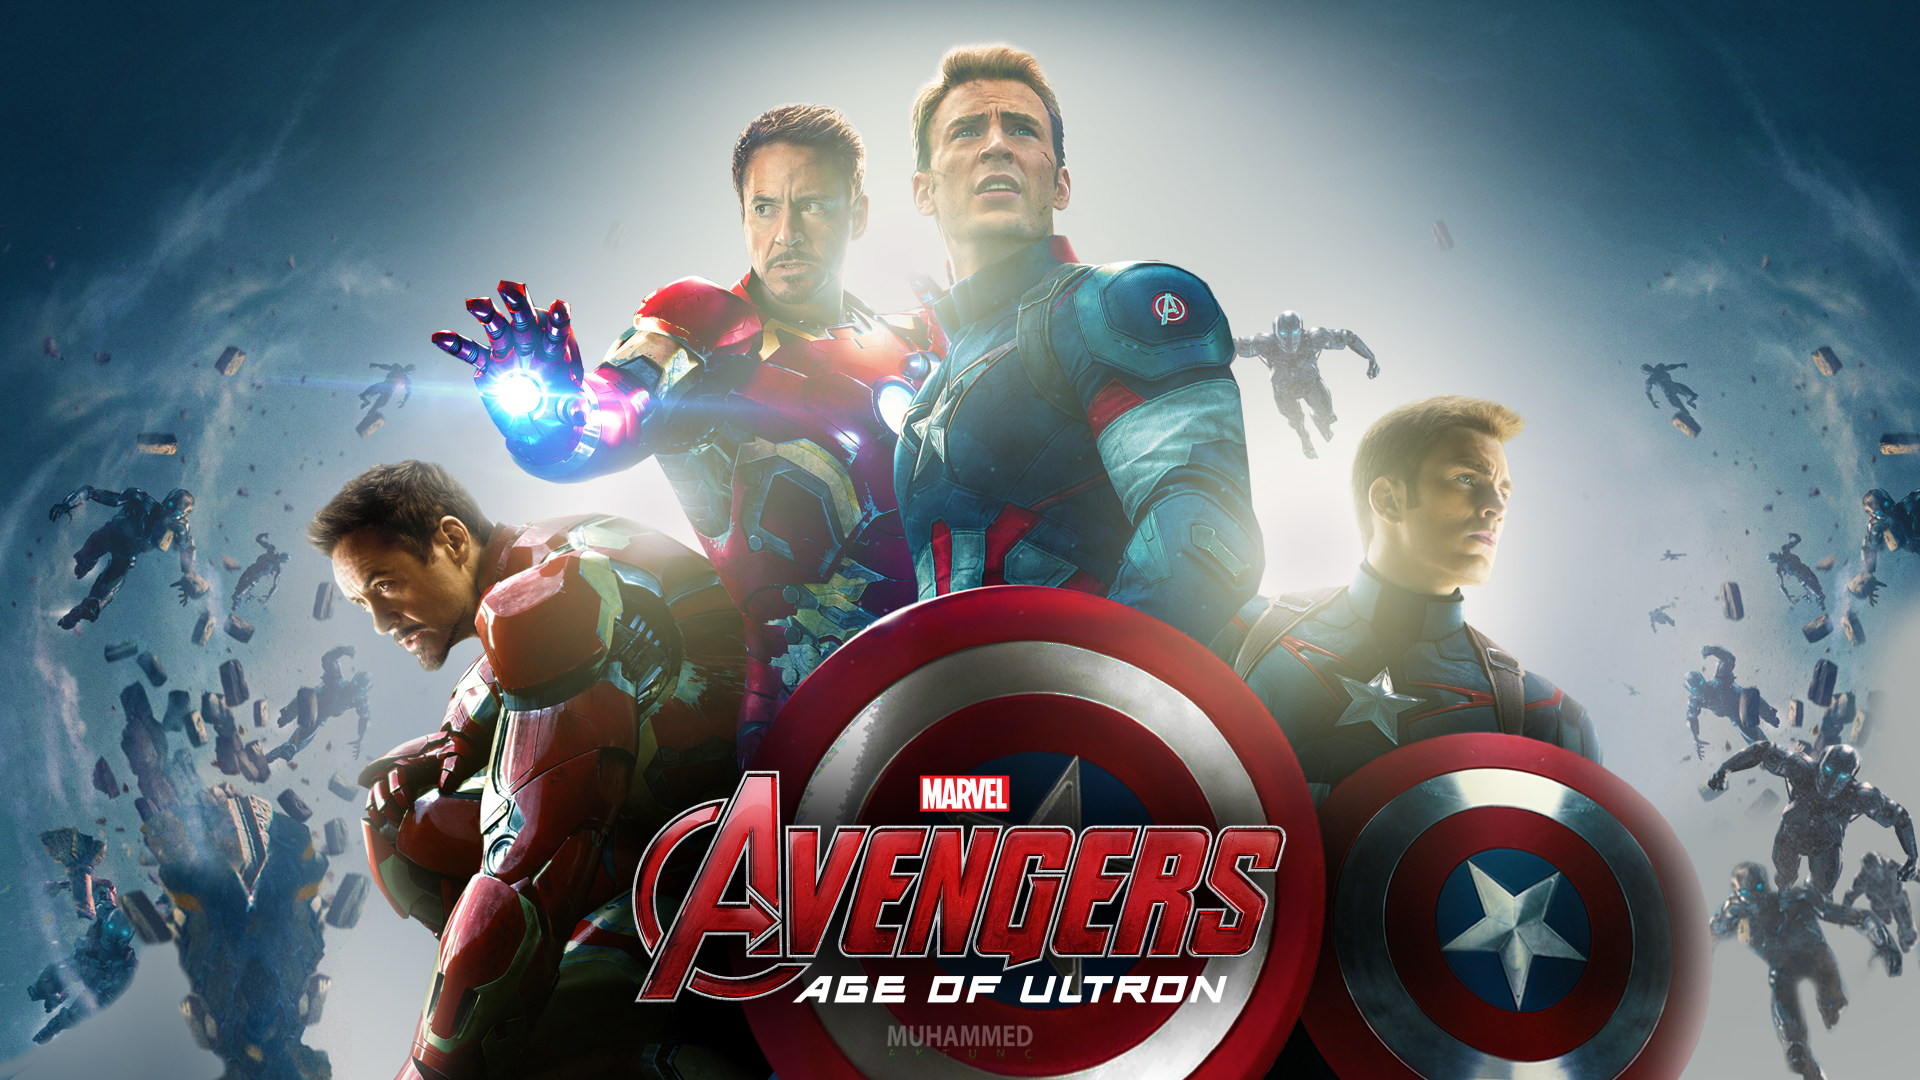 Marvels Avengers Age Of Ultron Hd Wallpaper By